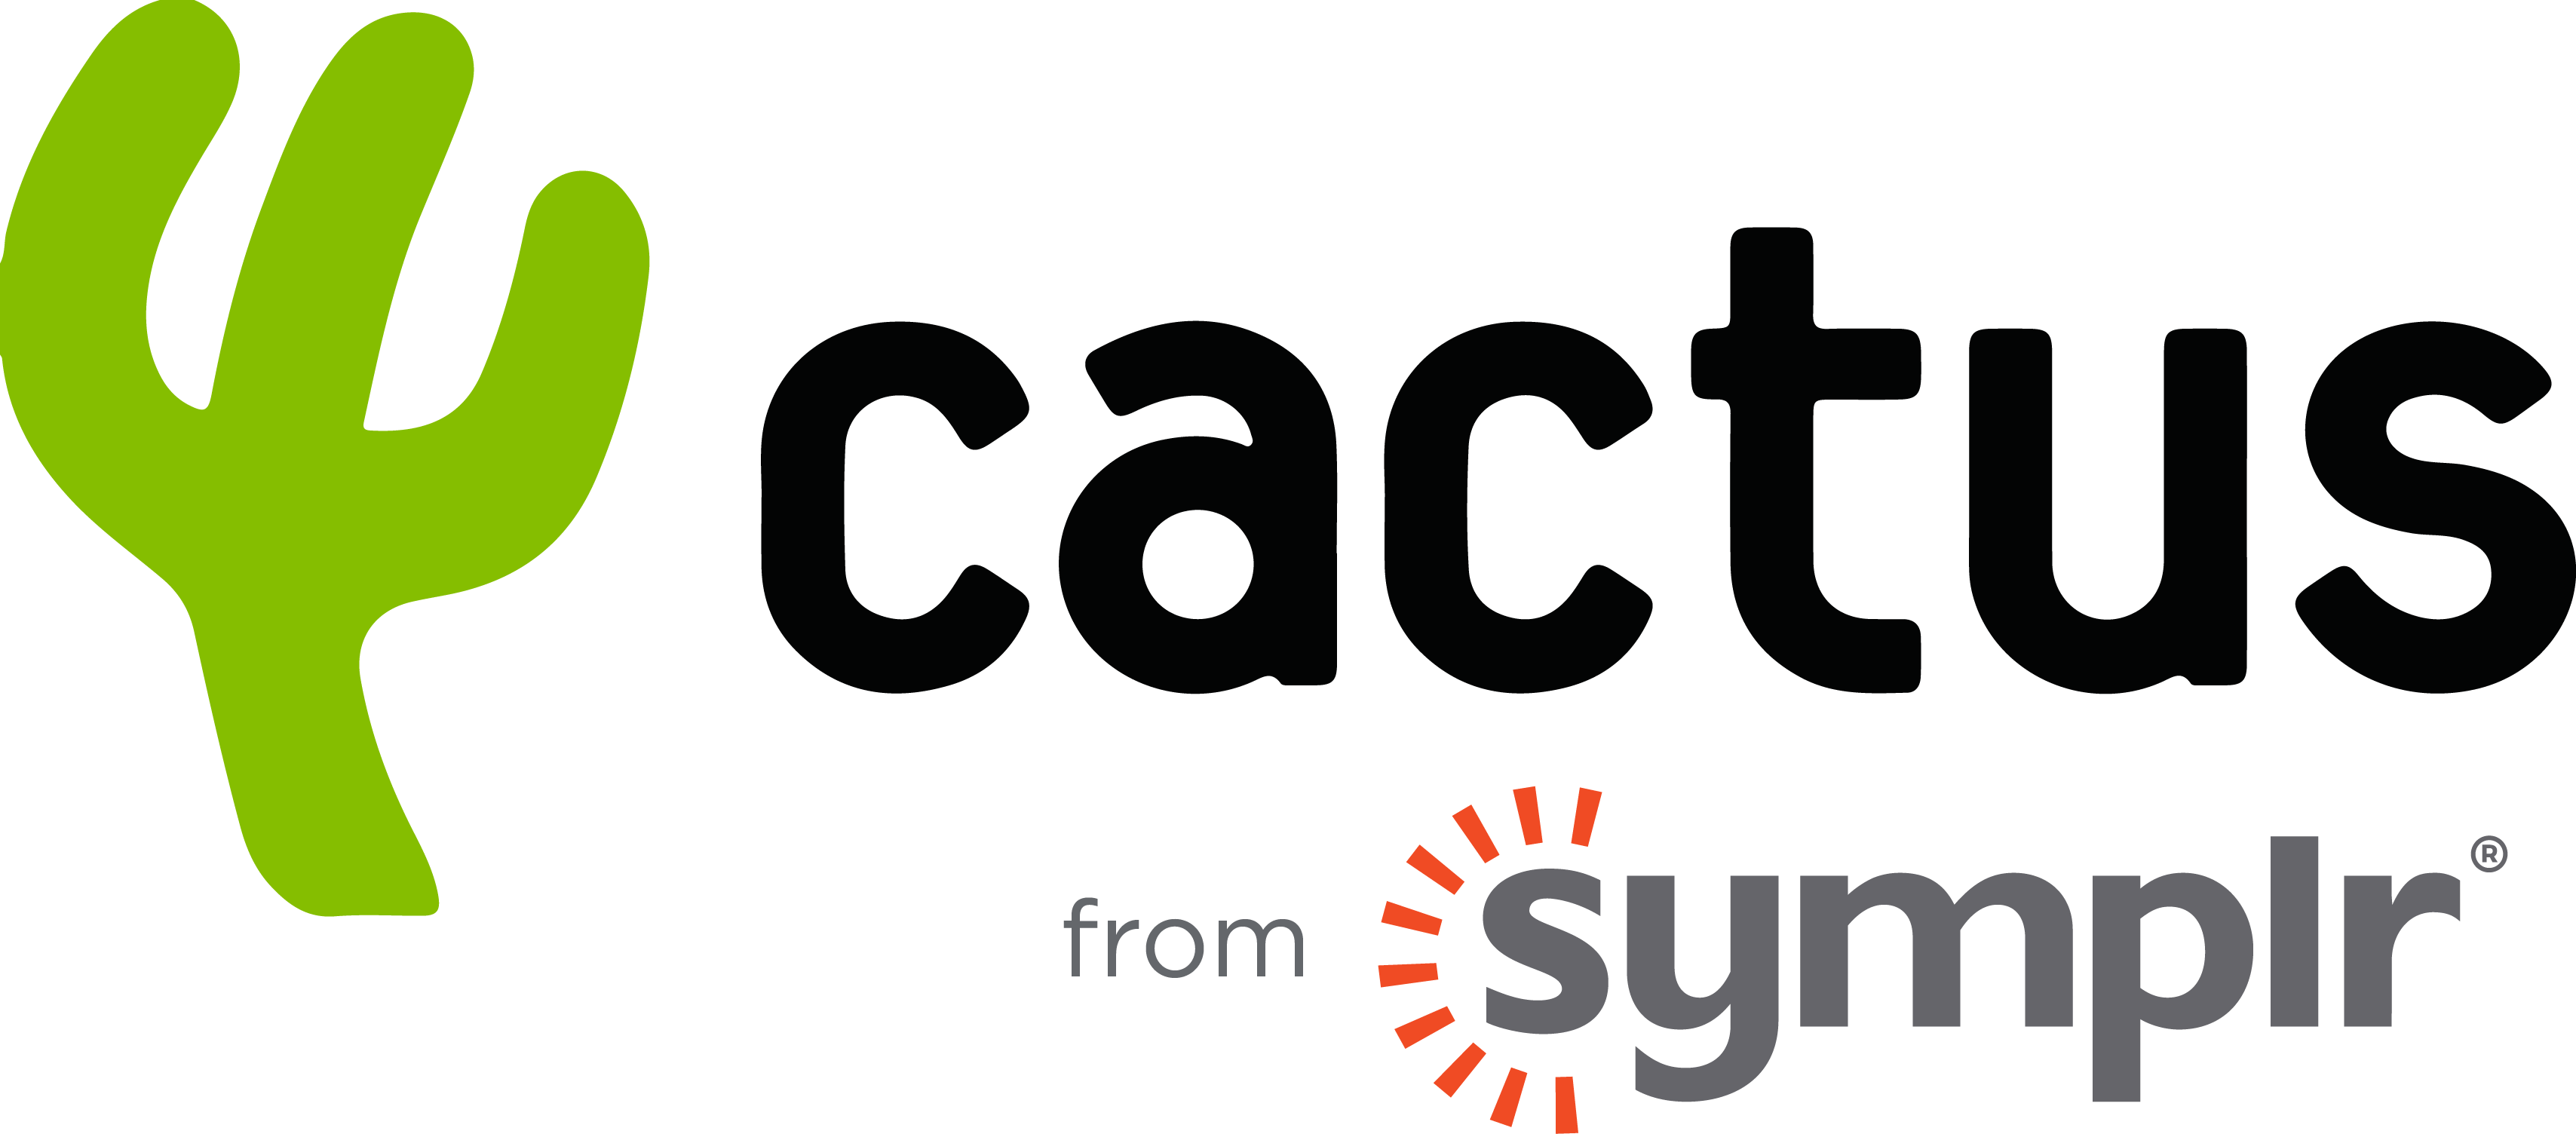 Cactus provider management from symplr